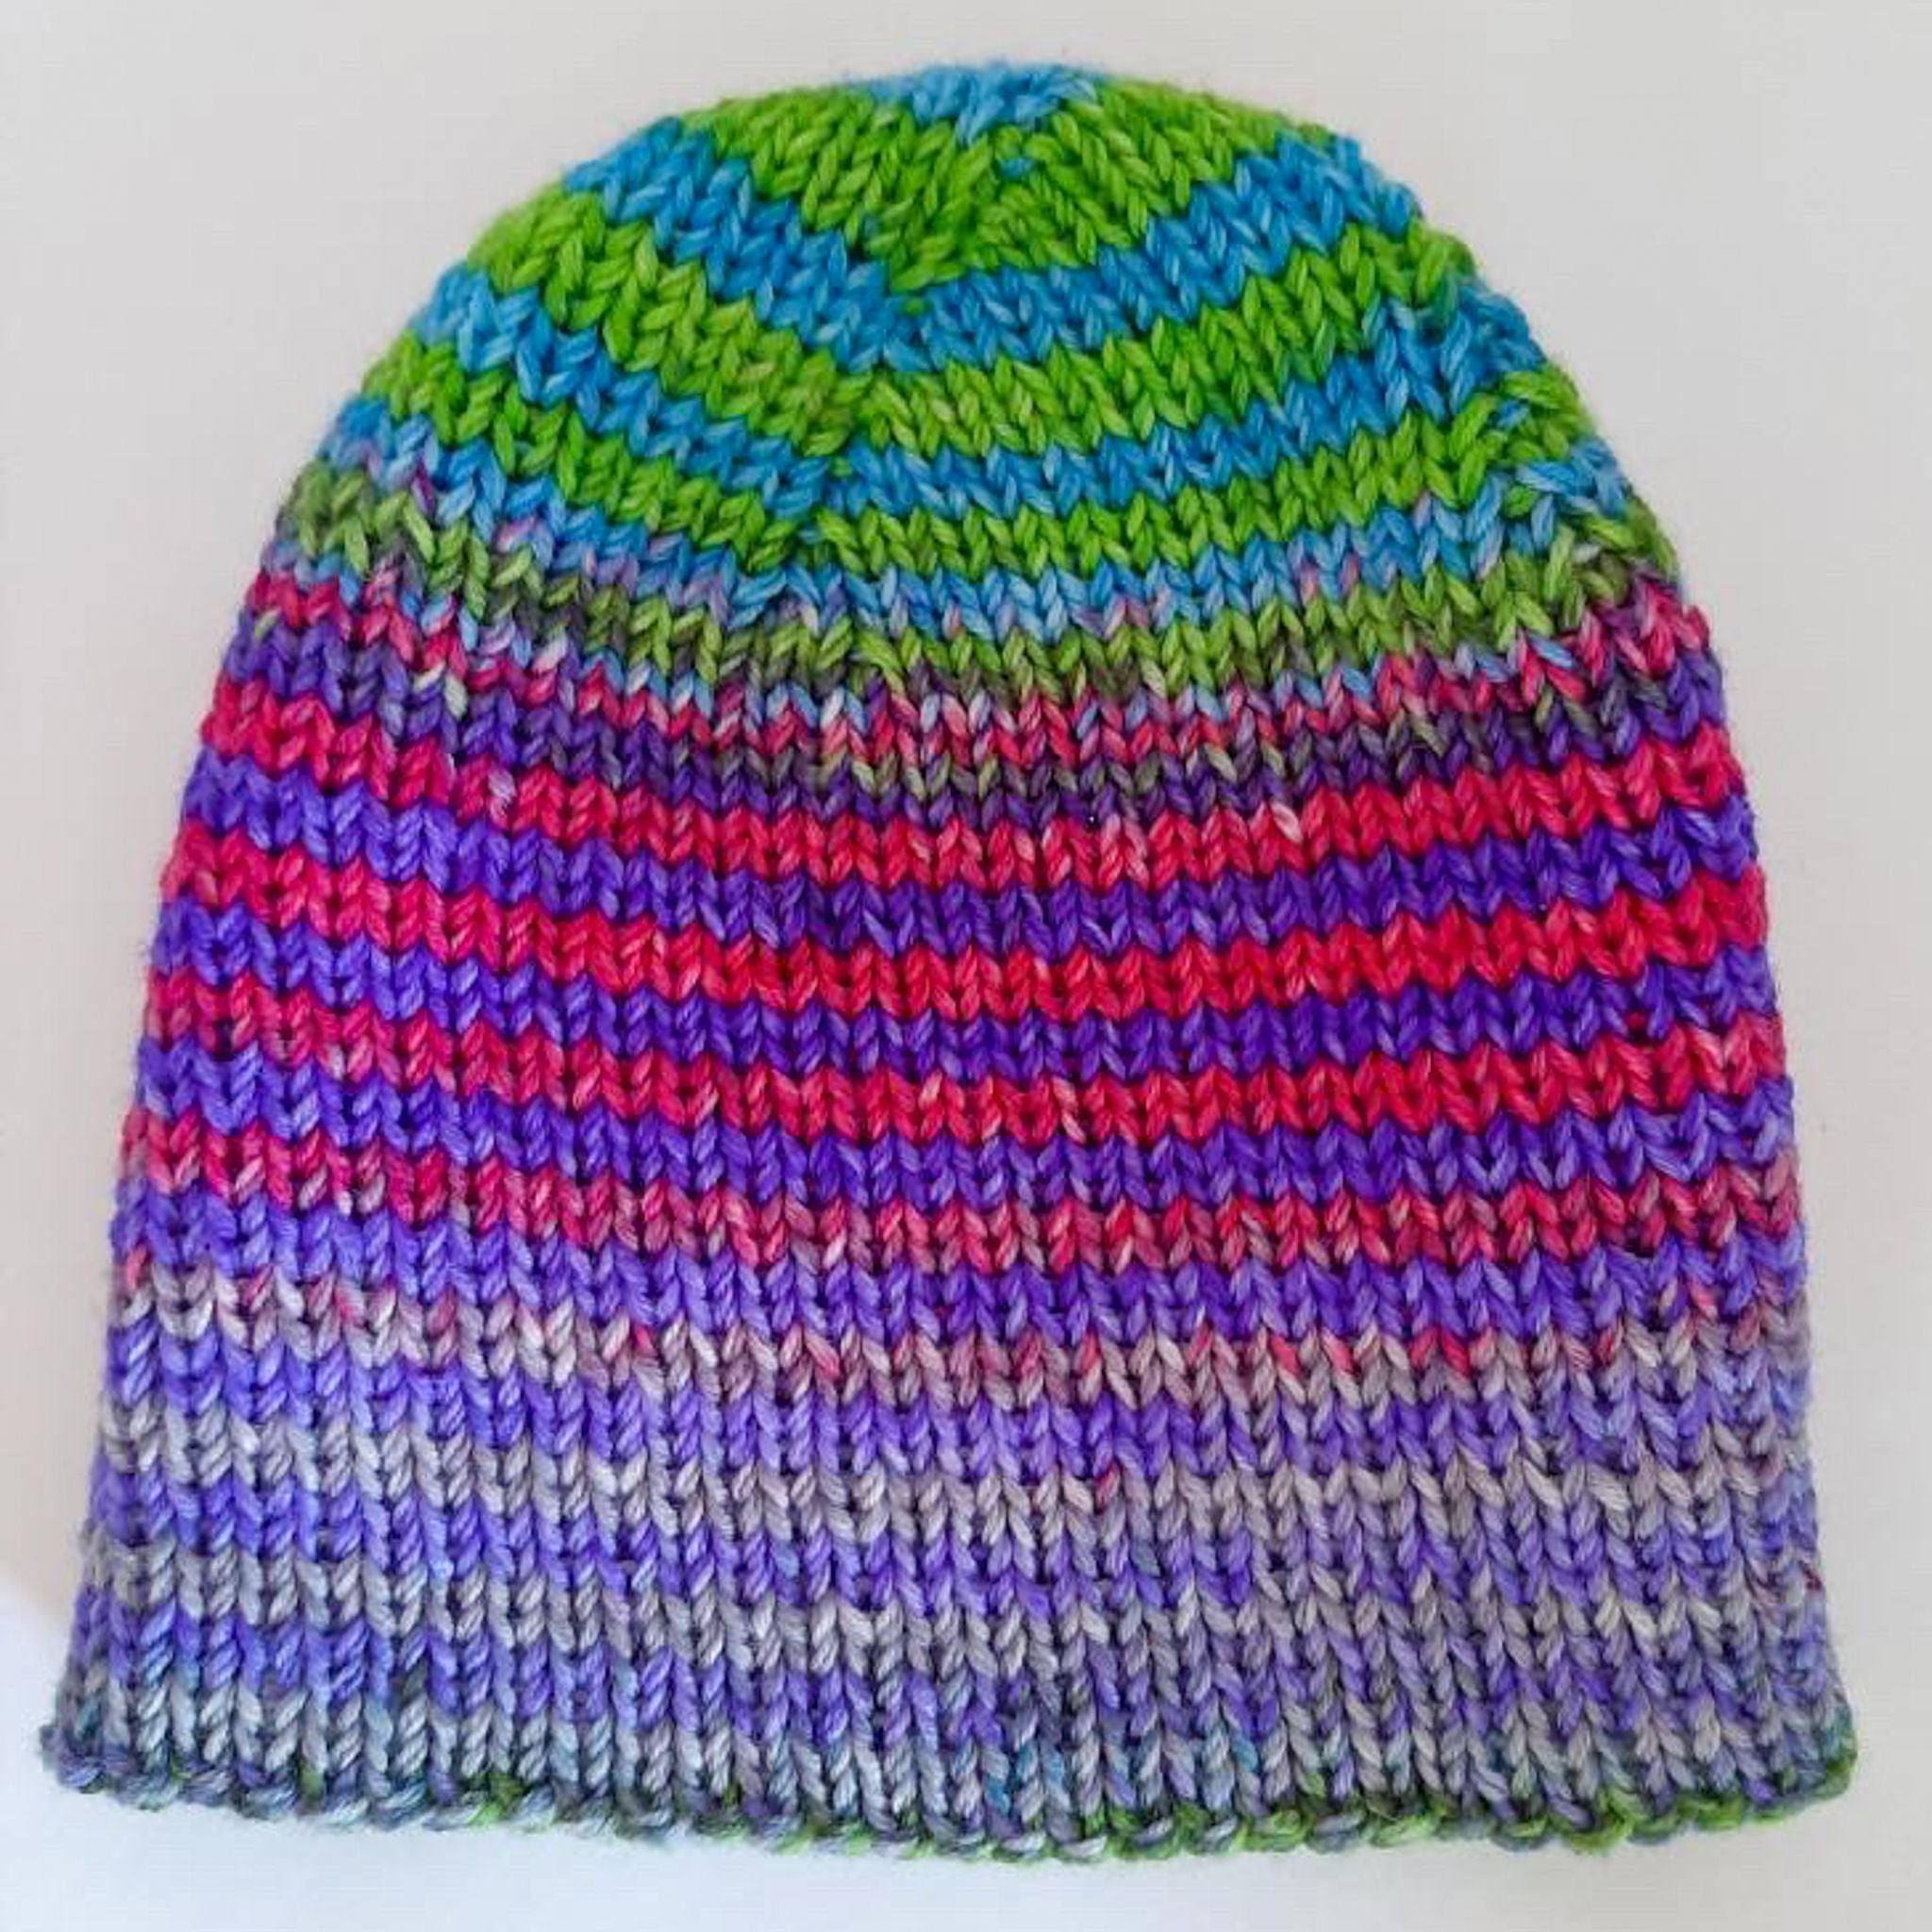 Flattened view of finished Boss Beanie showing the progression of colors from green and blue at the top to pink and purple to gray and purple at the bottom.